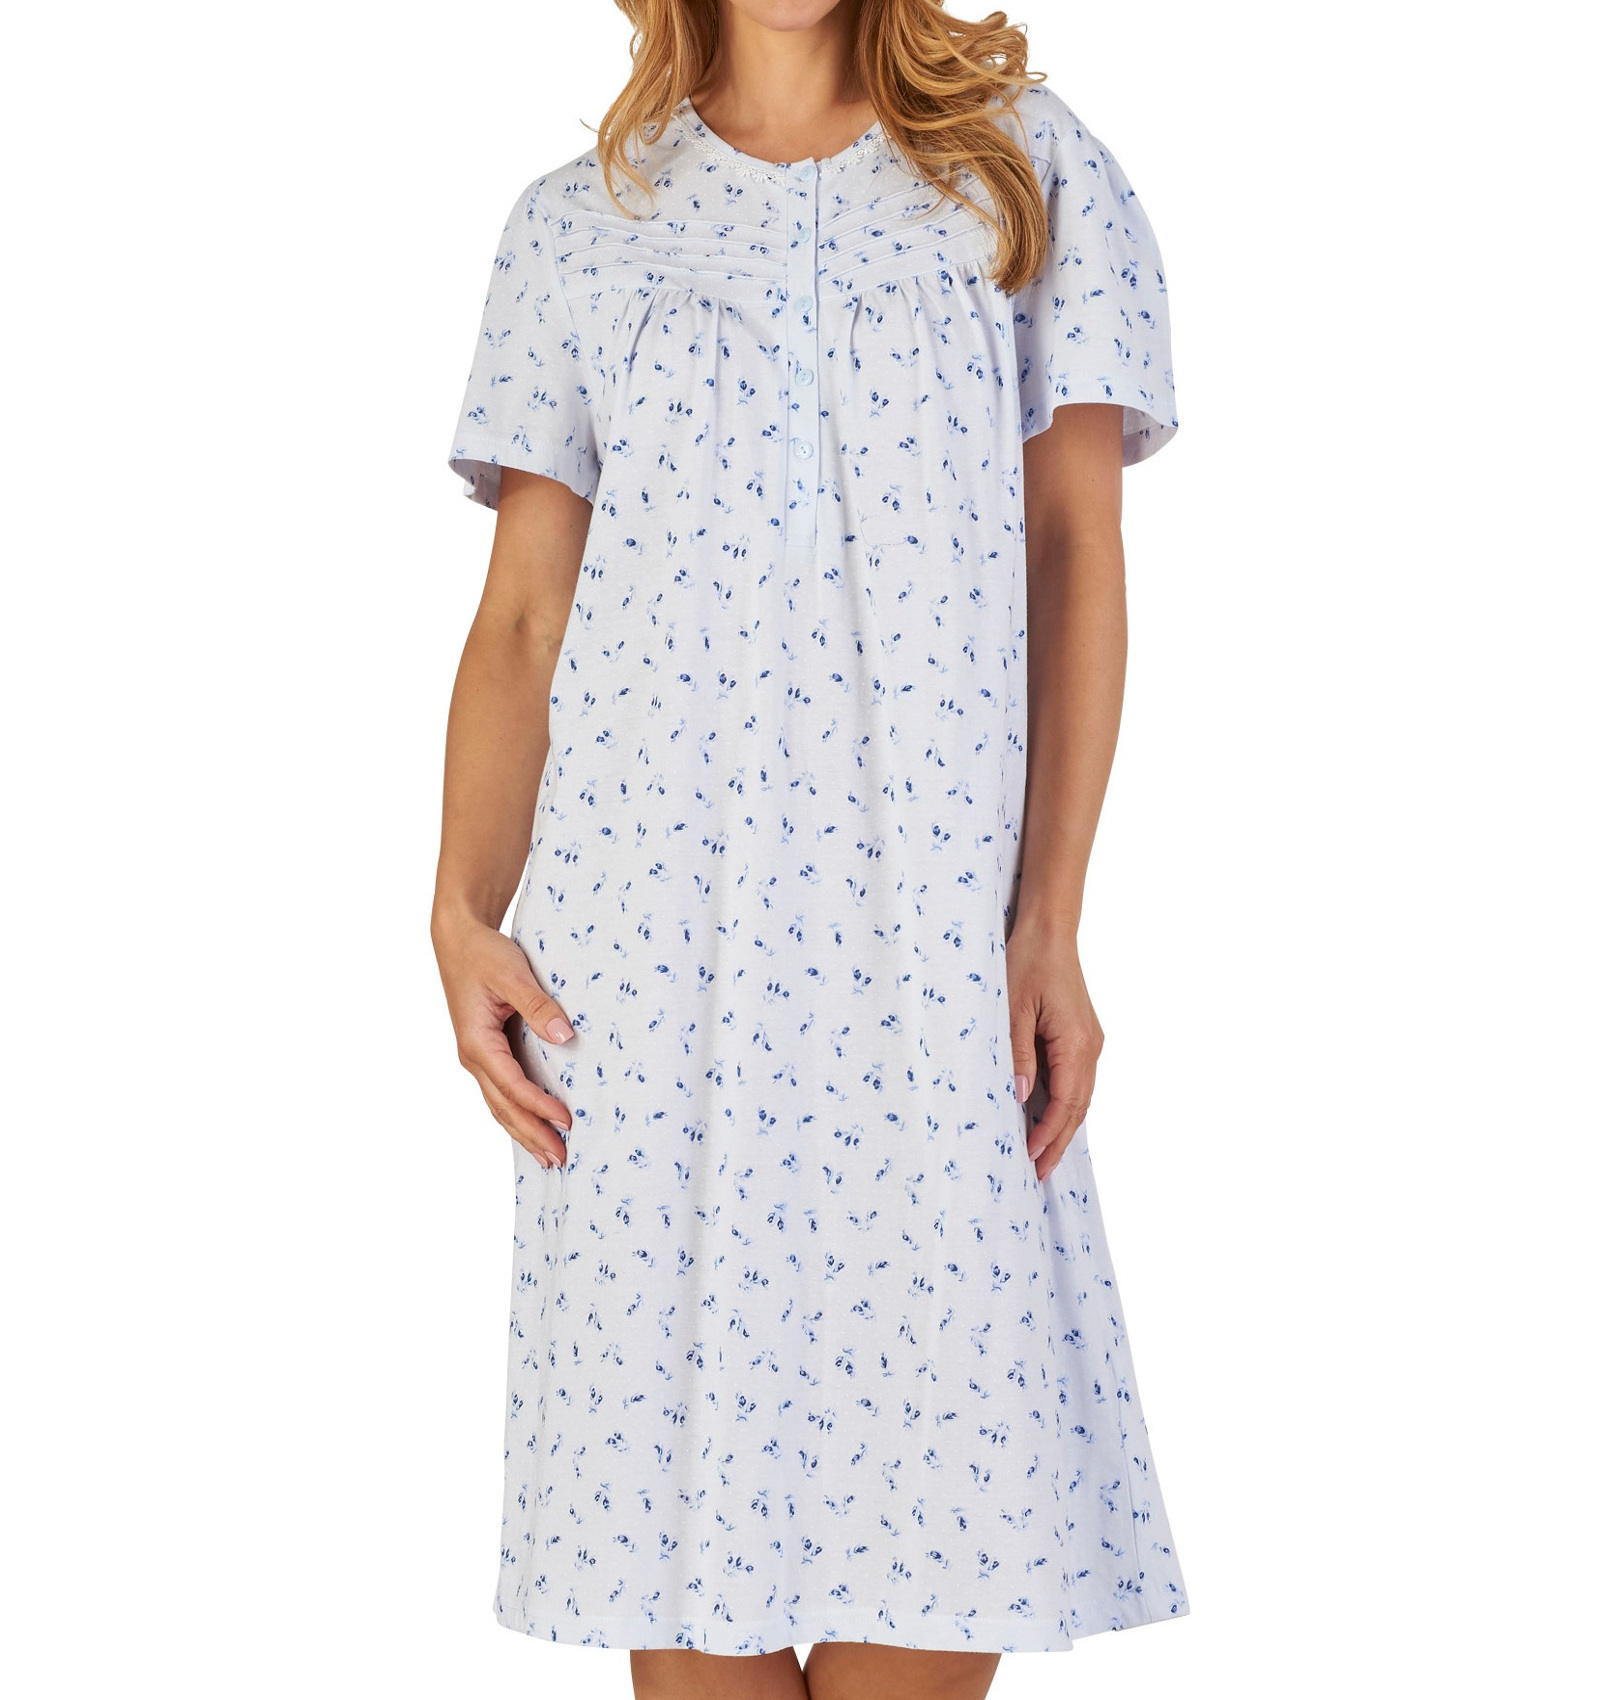 fd850aa216 This ladies nightdress by Slenderella has a classic floral and spot pattern  throughout with short sleeves and lace trim and would be perfect for  keeping you ...